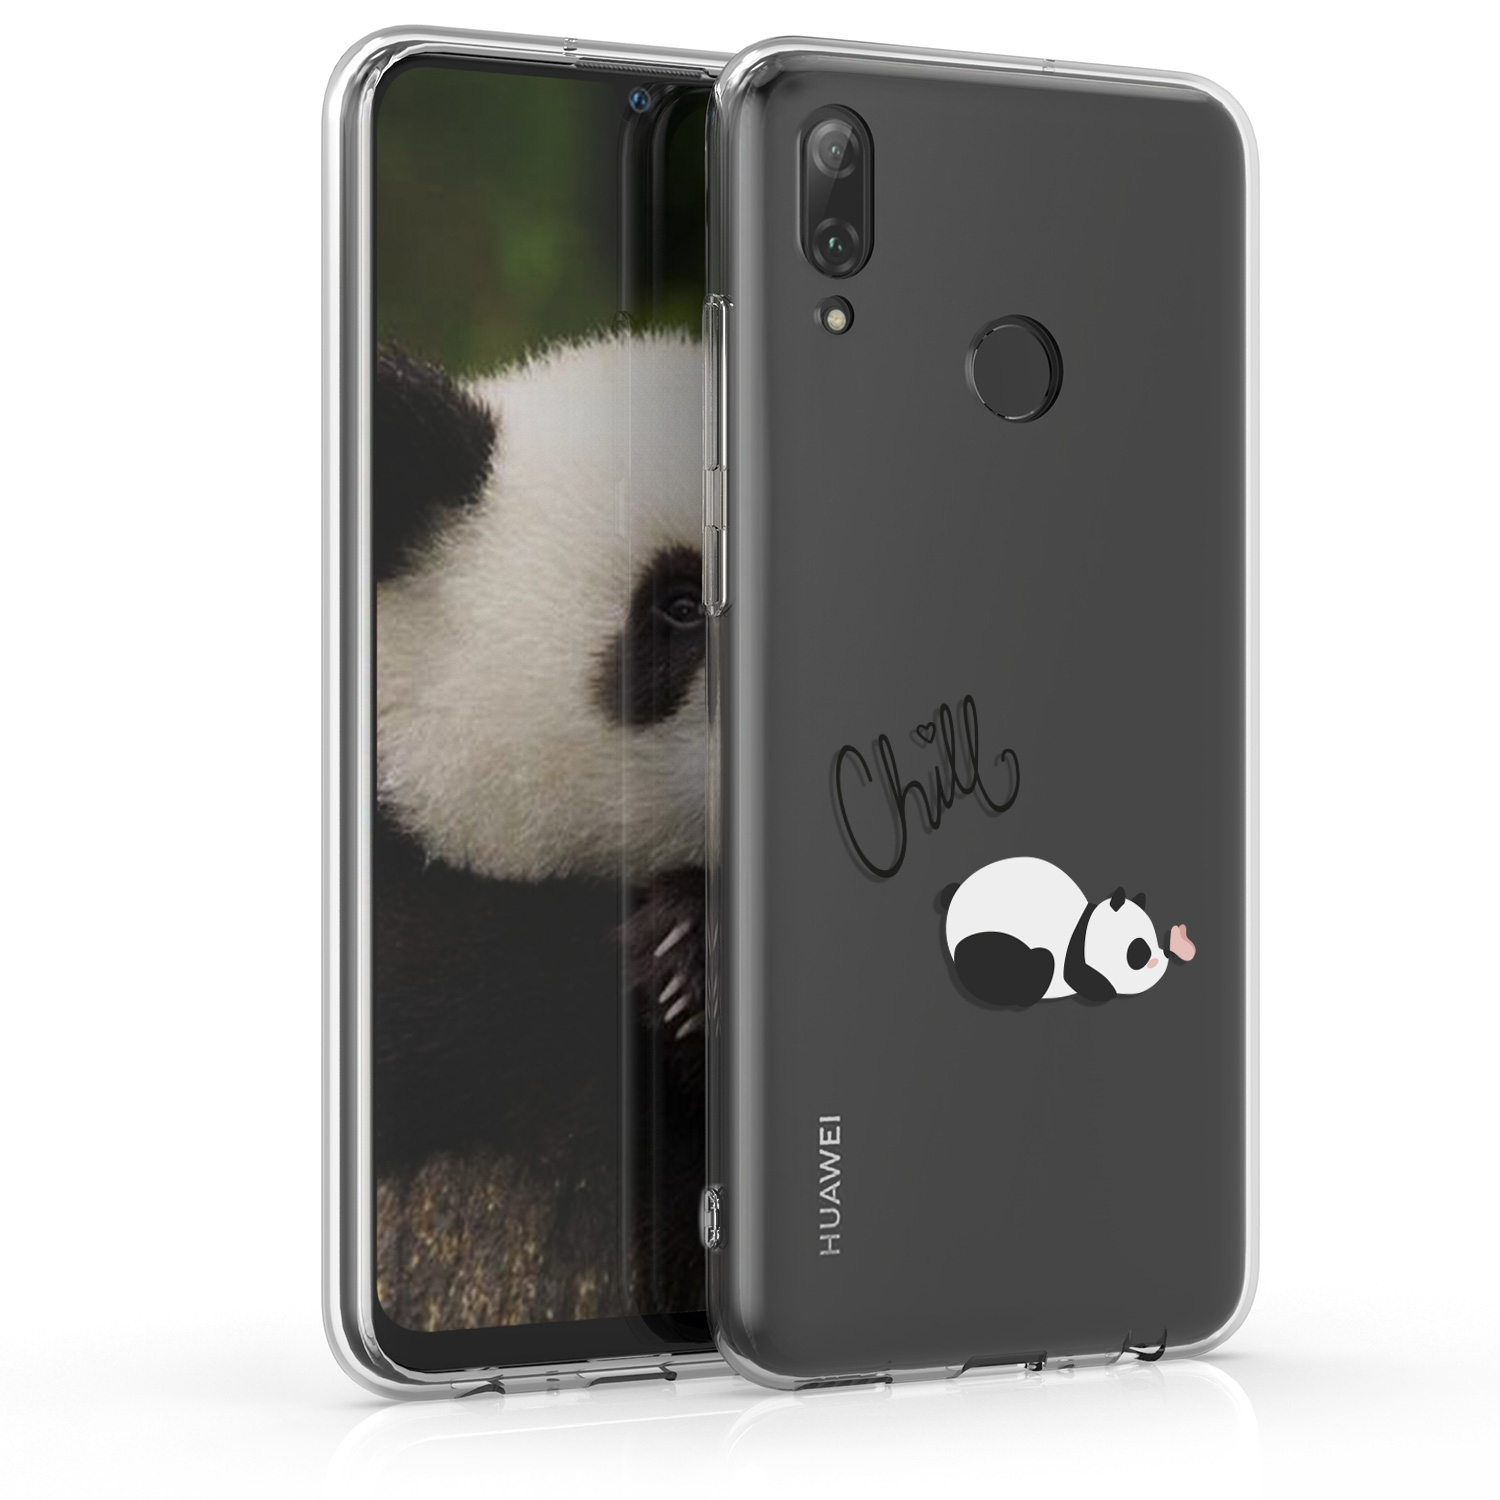 KW Θήκη Σιλικόνης Huawei P Smart 2019 - Black / White / Transparent (47388.11)